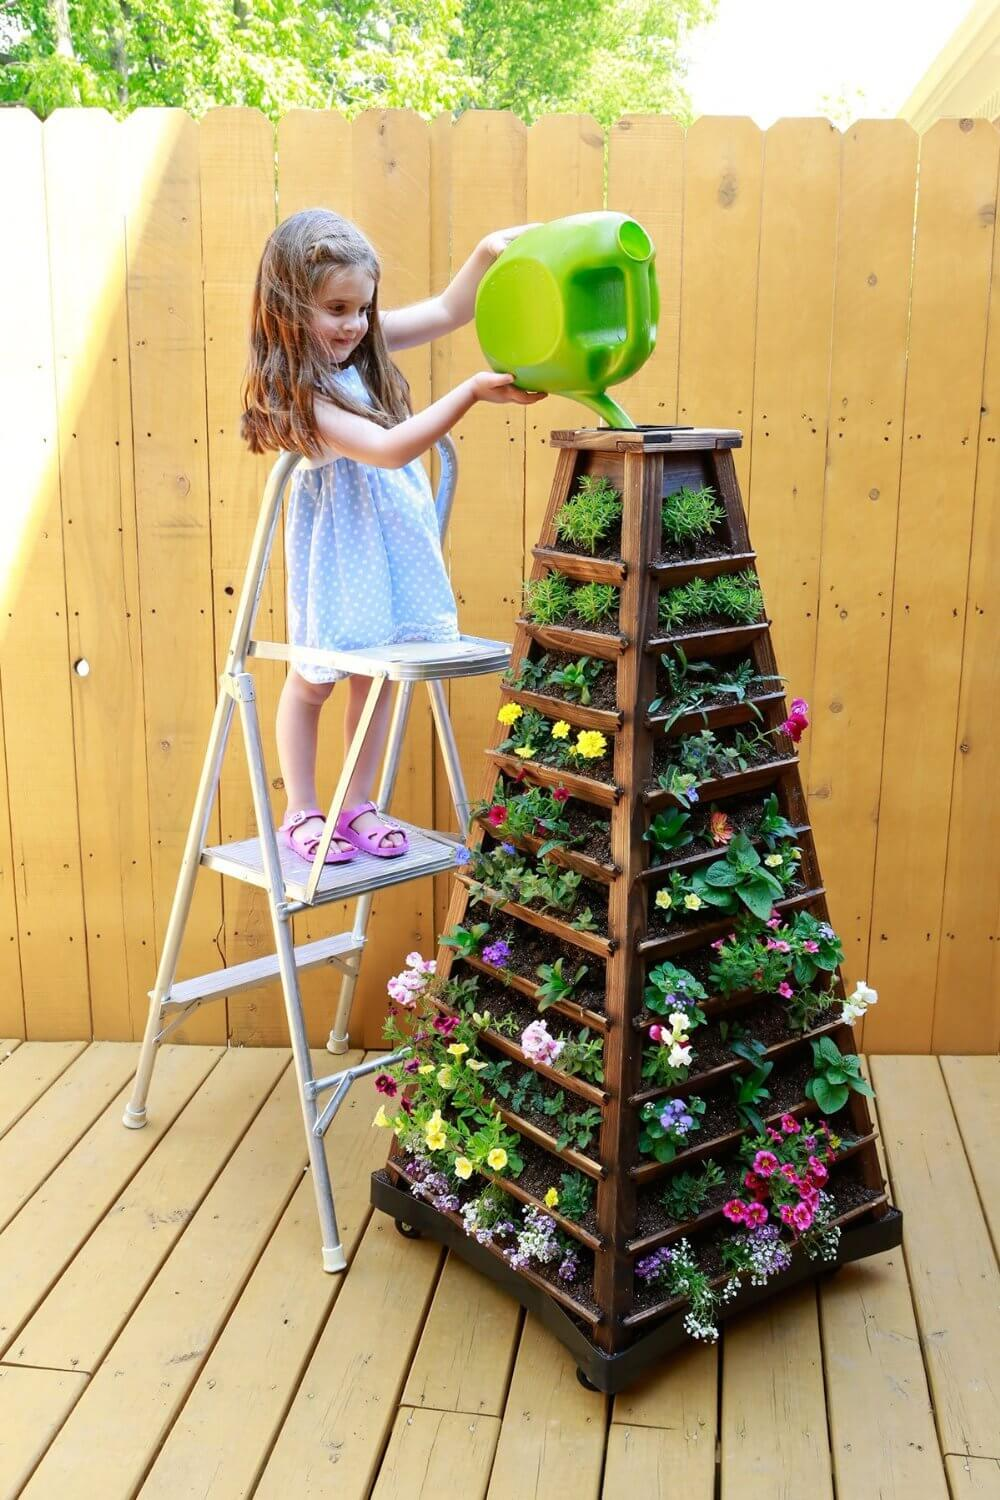 DIY Flower Towers Ideas: Classic Flower Tower to Maximize Space